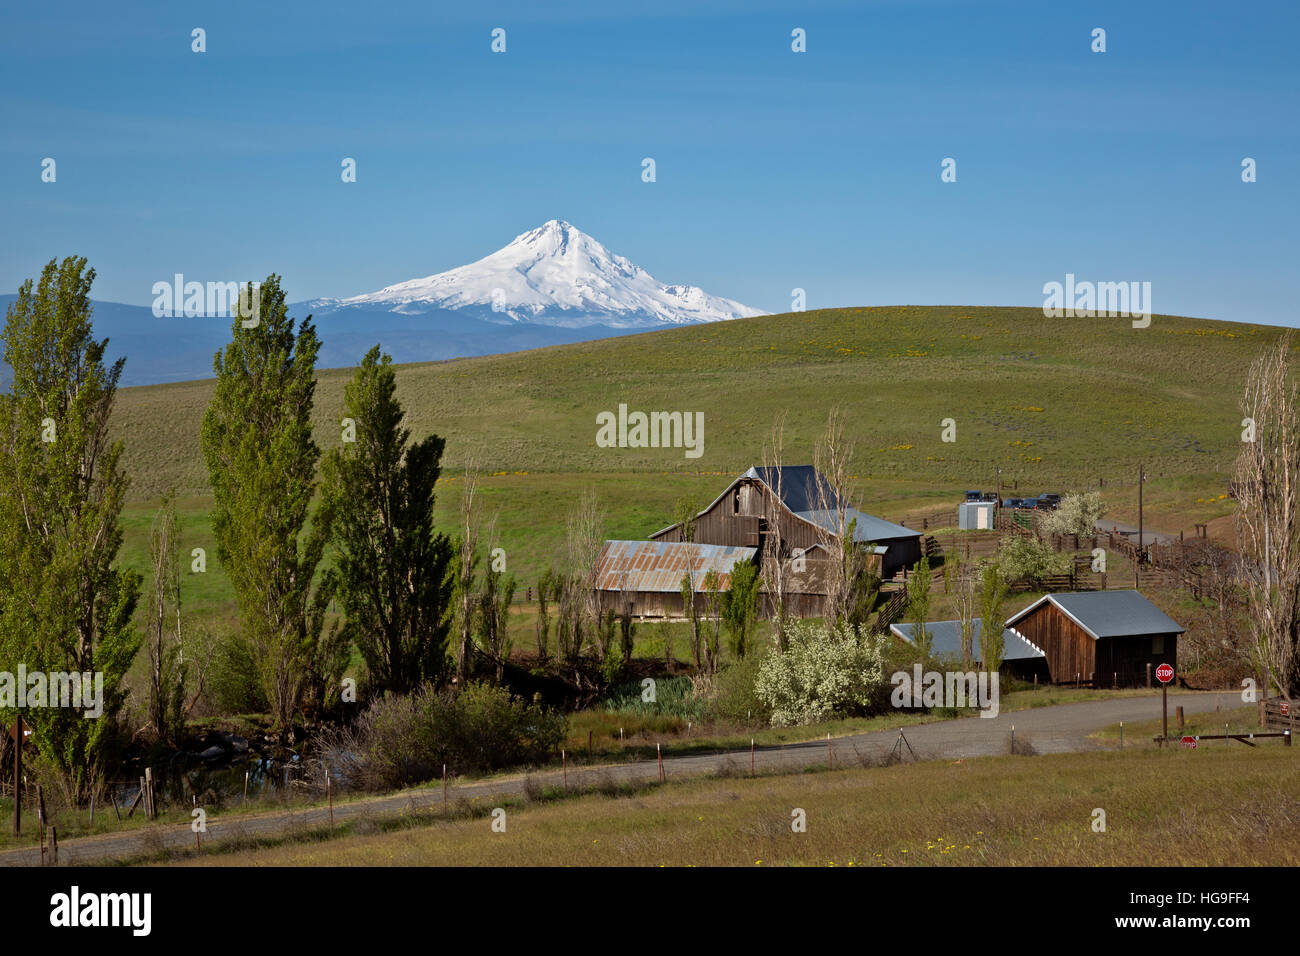 WASHINGTON - Mount Hood rising above the rolling hills of the historic Dalles Mountain Ranch in Columbia Hills State - Stock Image